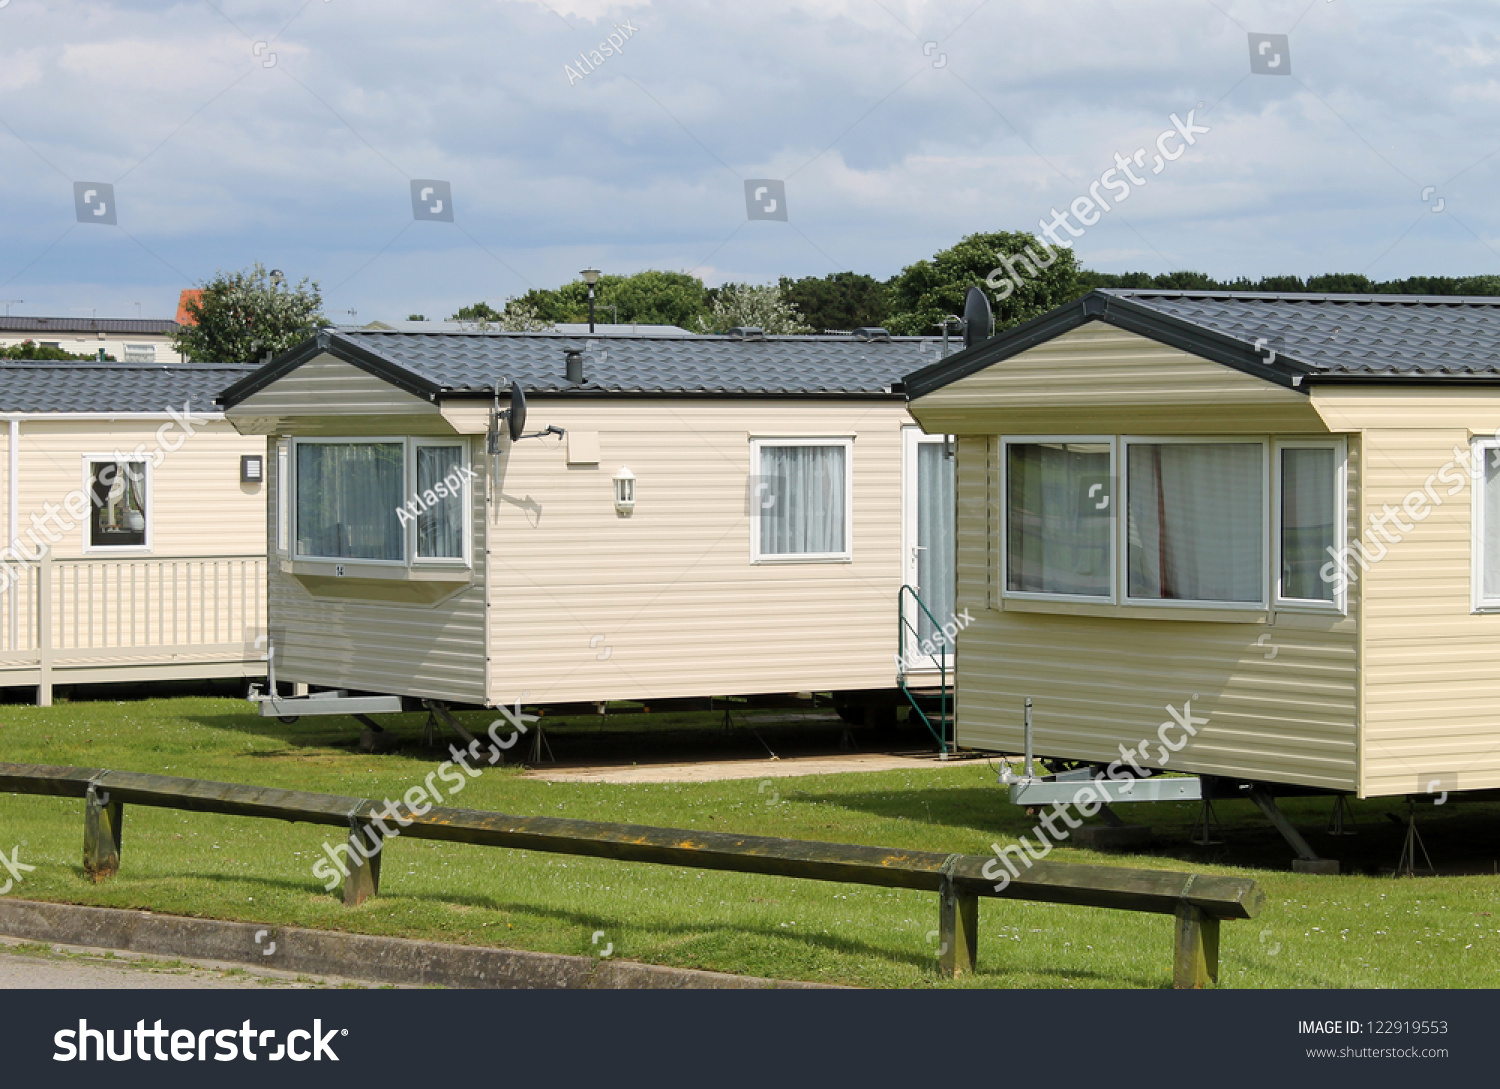 clipart mobile home - photo #38